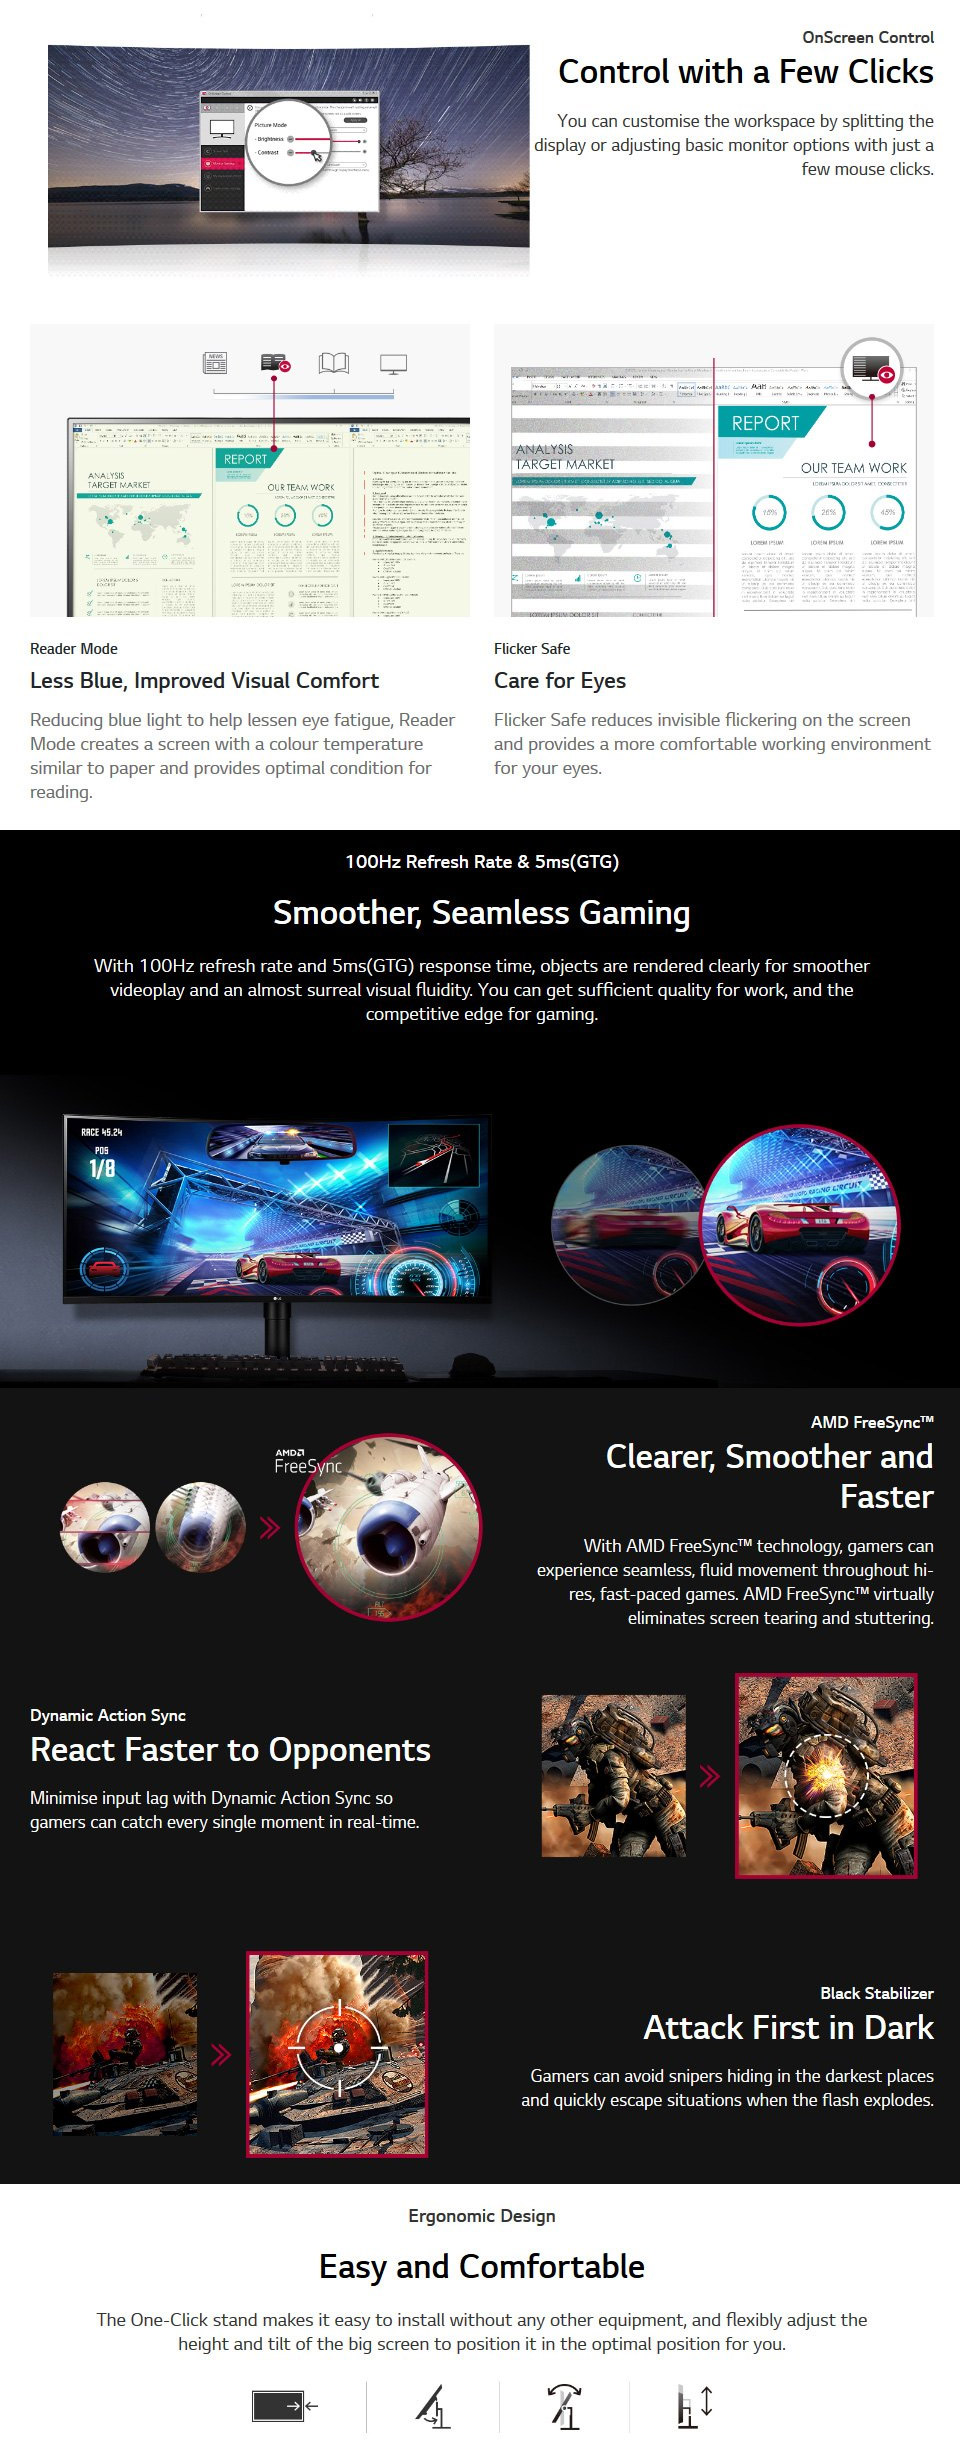 LG 35WN75C-B UWQHD 100Hz FreeSync HDR Curved 35in Monitor features 2